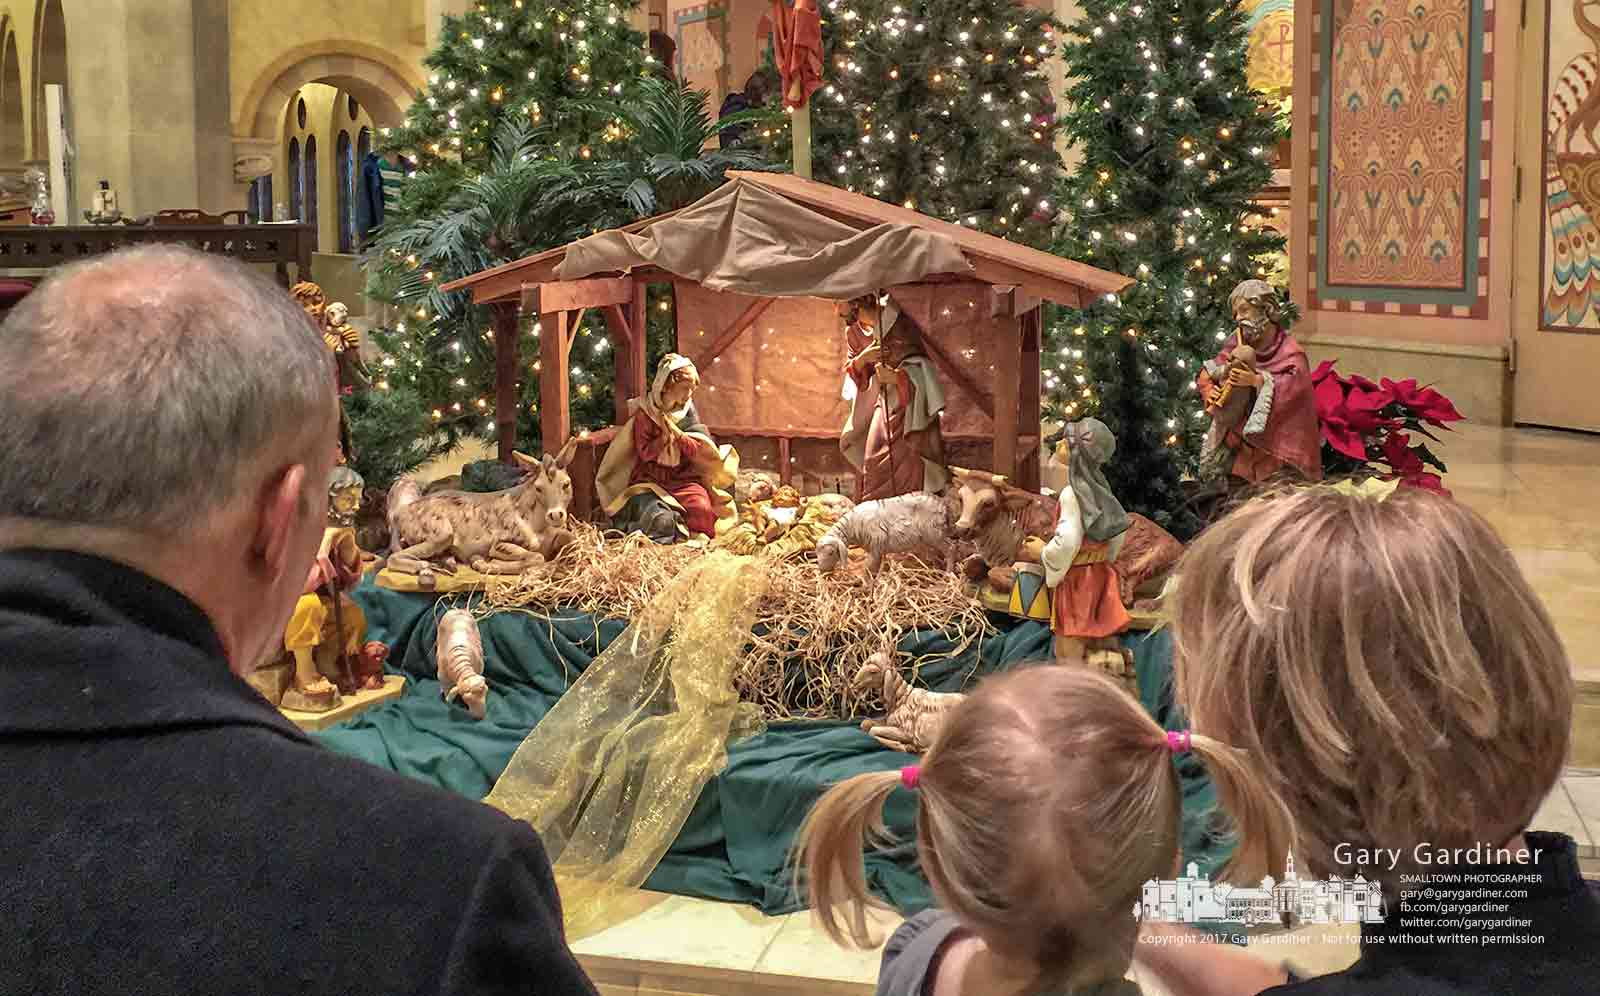 A family examines the nativity scene adjacent to the altar after the Christmas Eve morning Mass at St. Paul Catholic Church in Westerville. My Final Photo for Dec. 24, 2017.